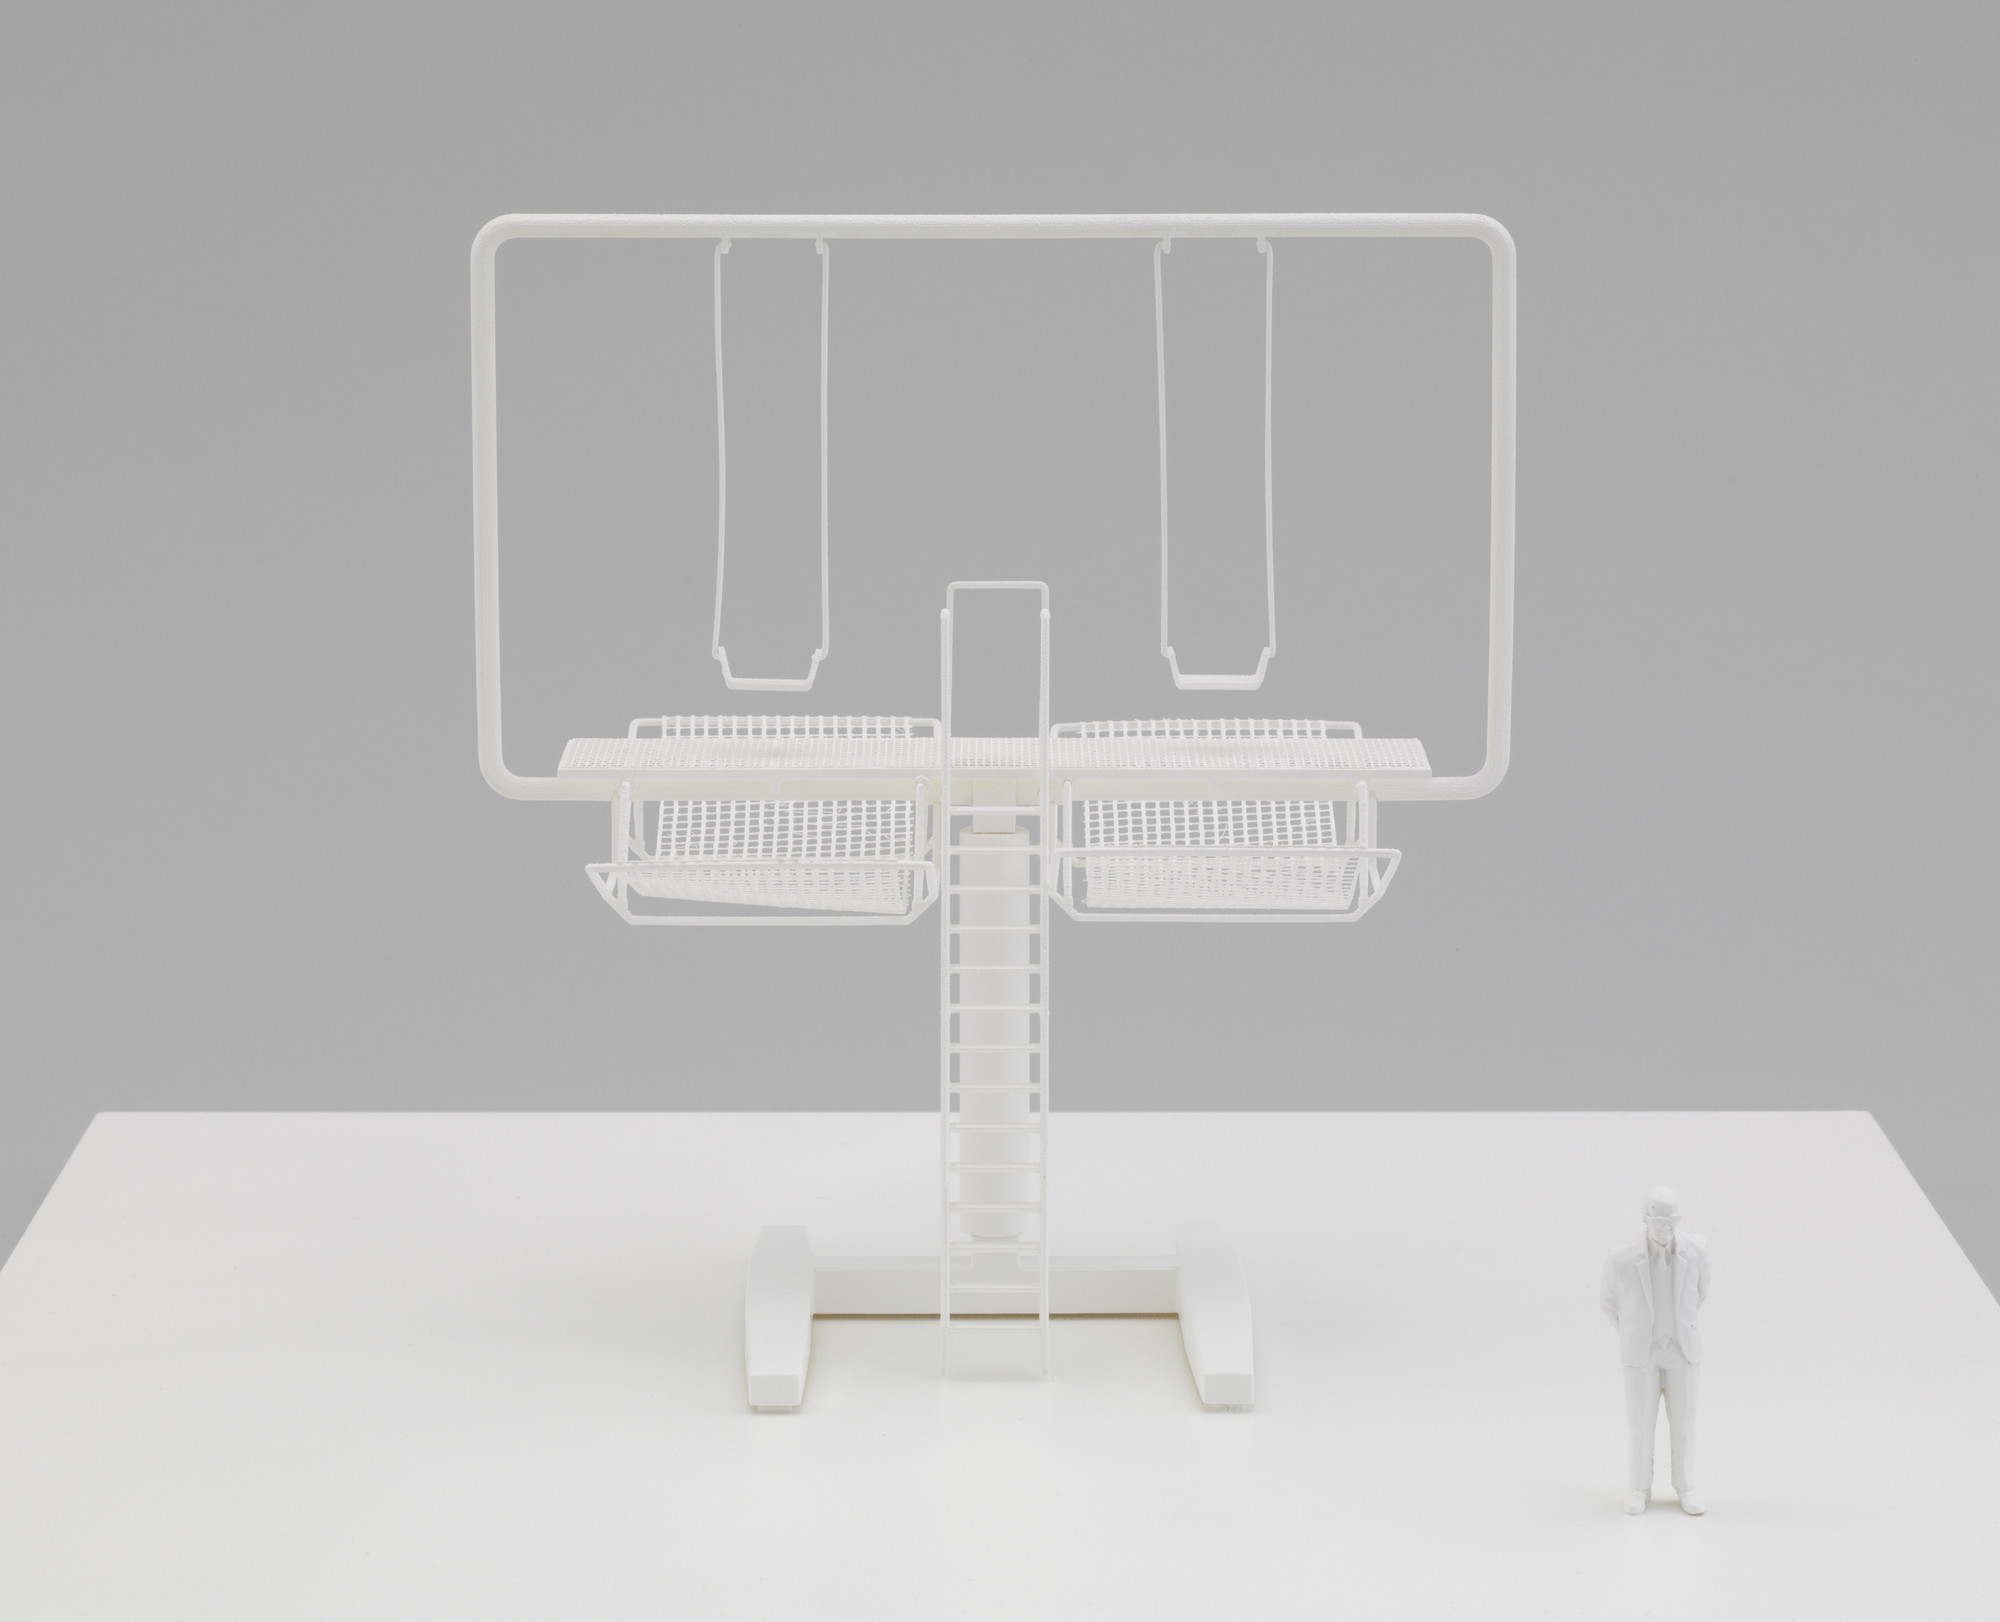 Didier Faustino. Double Happiness (Model of the installation at the Shenzhen-Hong Kong Bi-City Biennale of Urbanism and Architecture). 2009